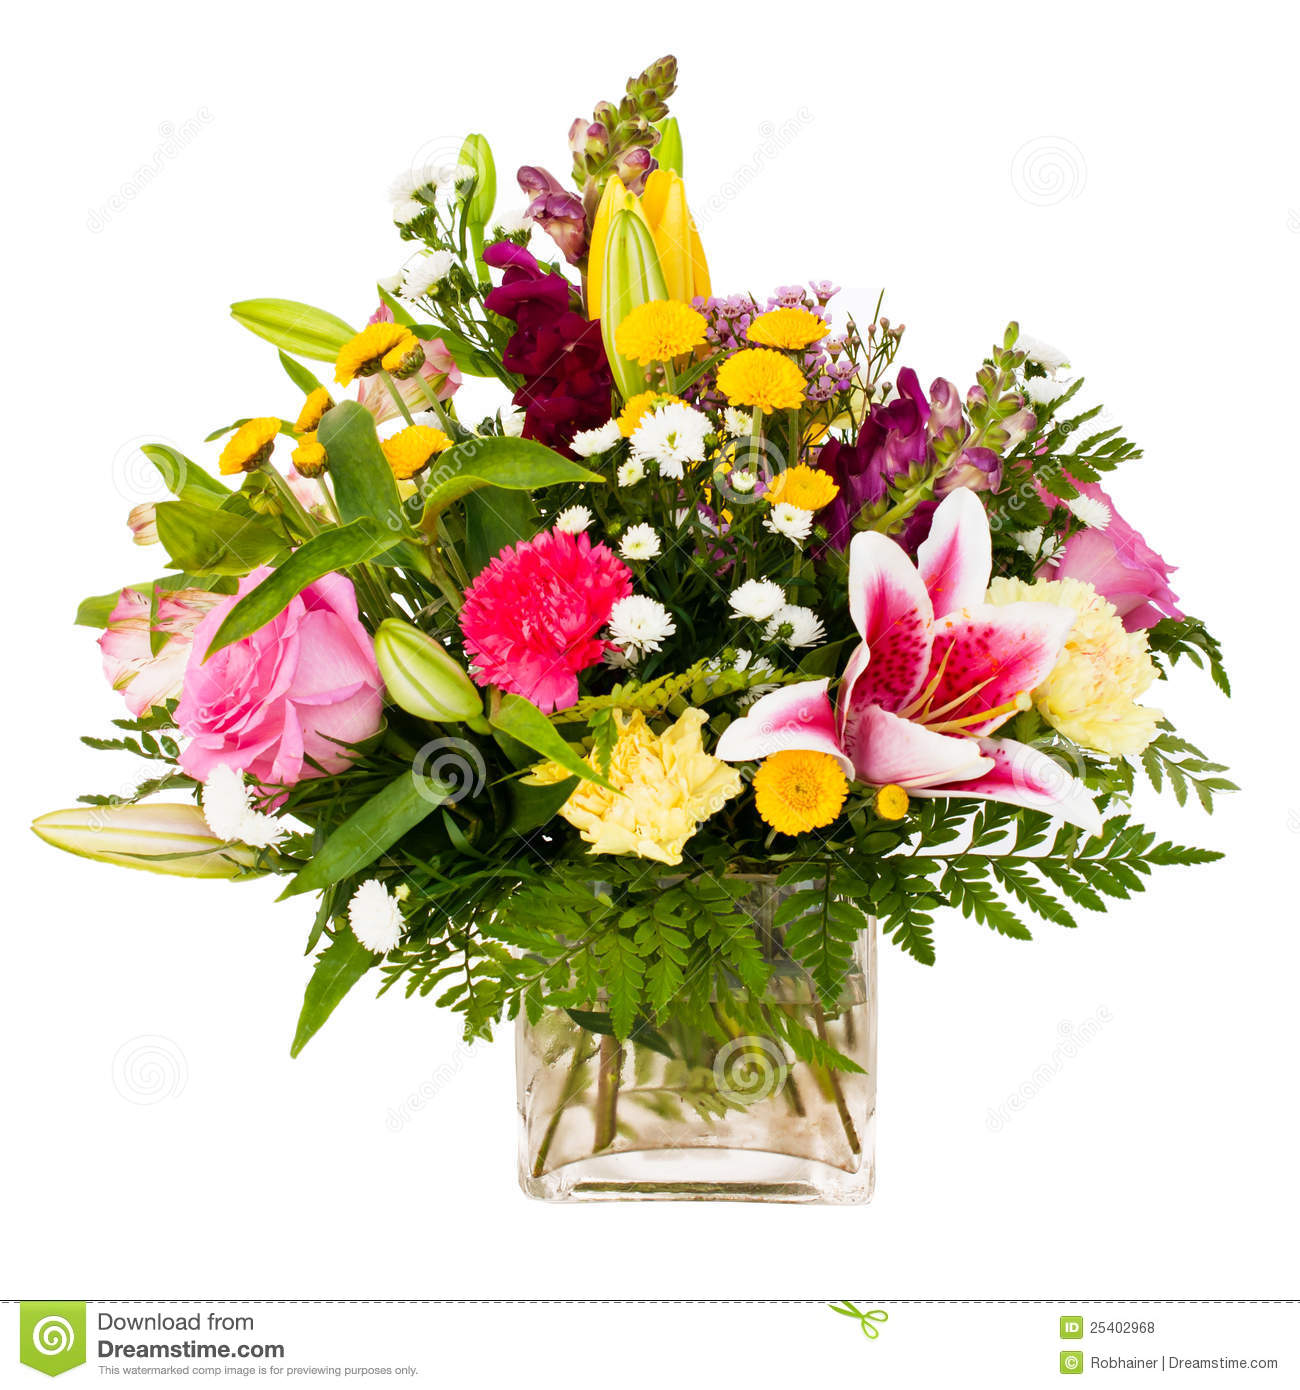 Colorful Flower Bouquet Arrangement Centerpiece In Vase Isolated.